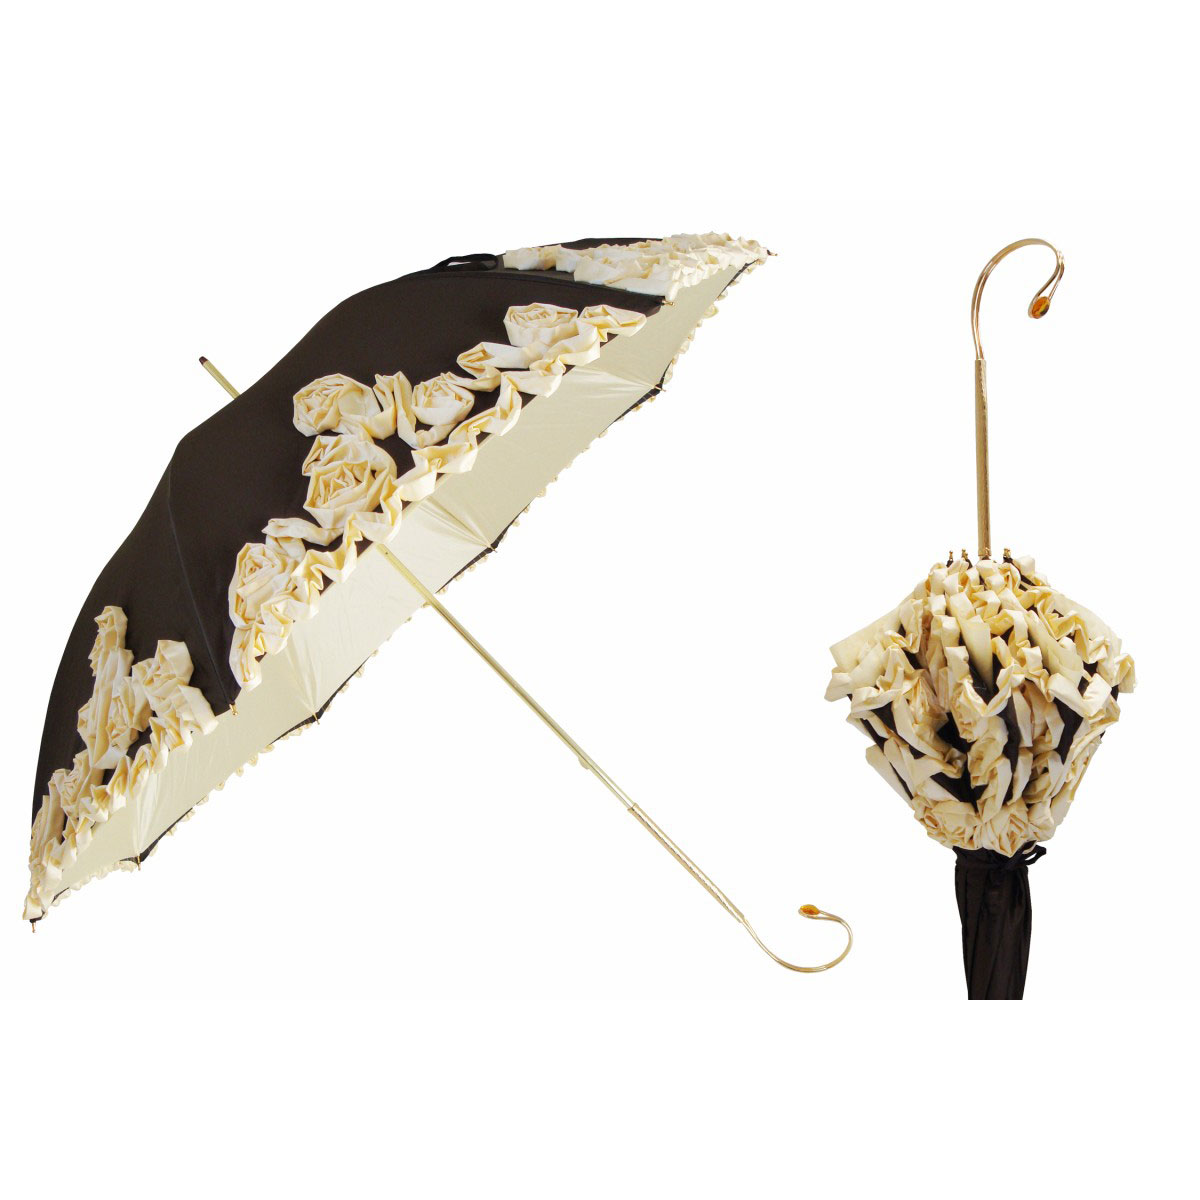 Pasotti Ombrelli Marvelous Bouquet Luxury Women's Umbrella